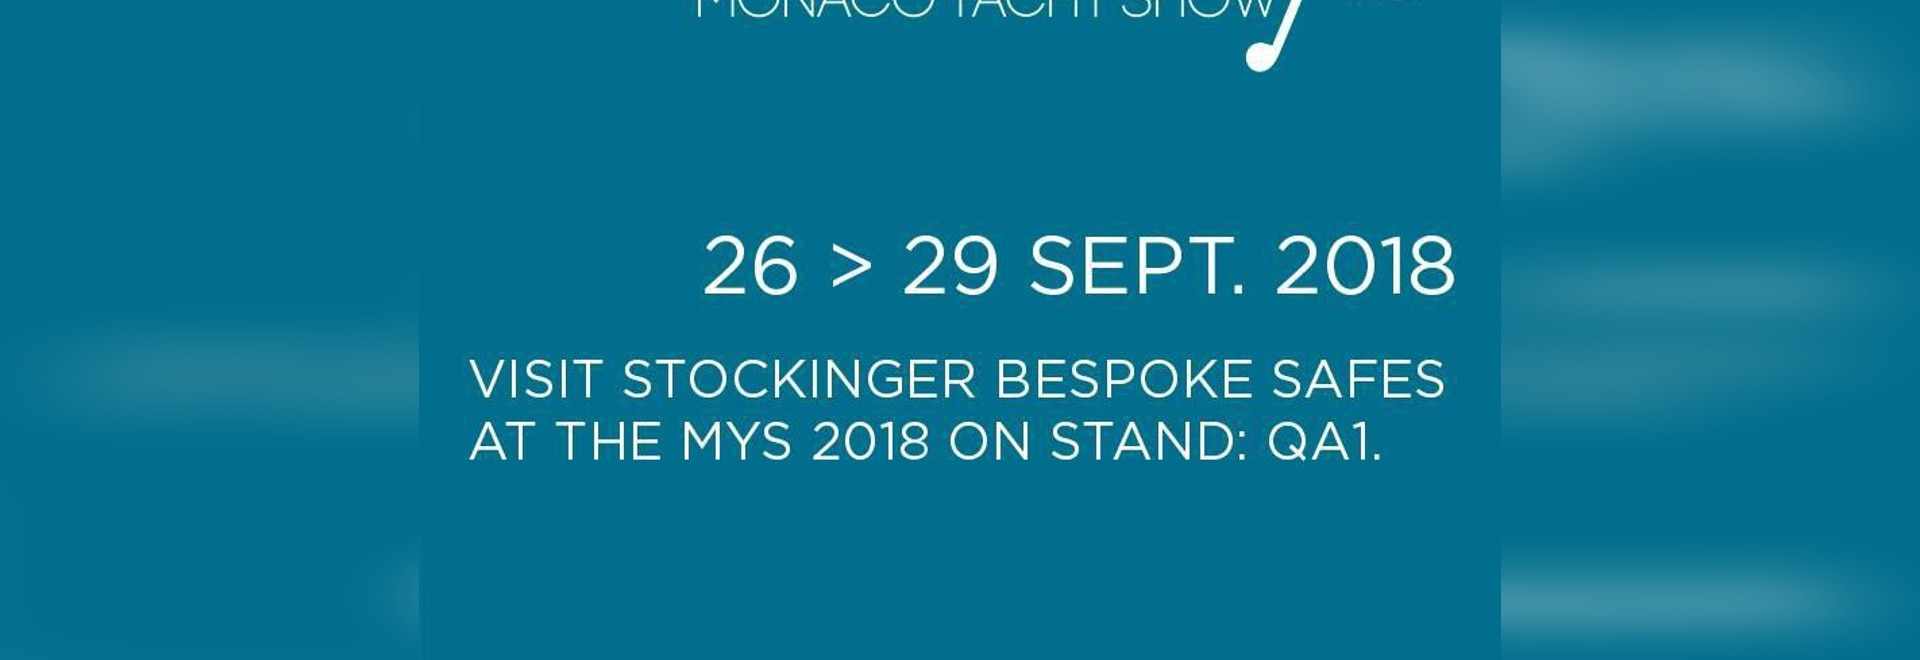 STOCKINGER BESPOKE SAFES @ MONACO YACHT SHOW 2018